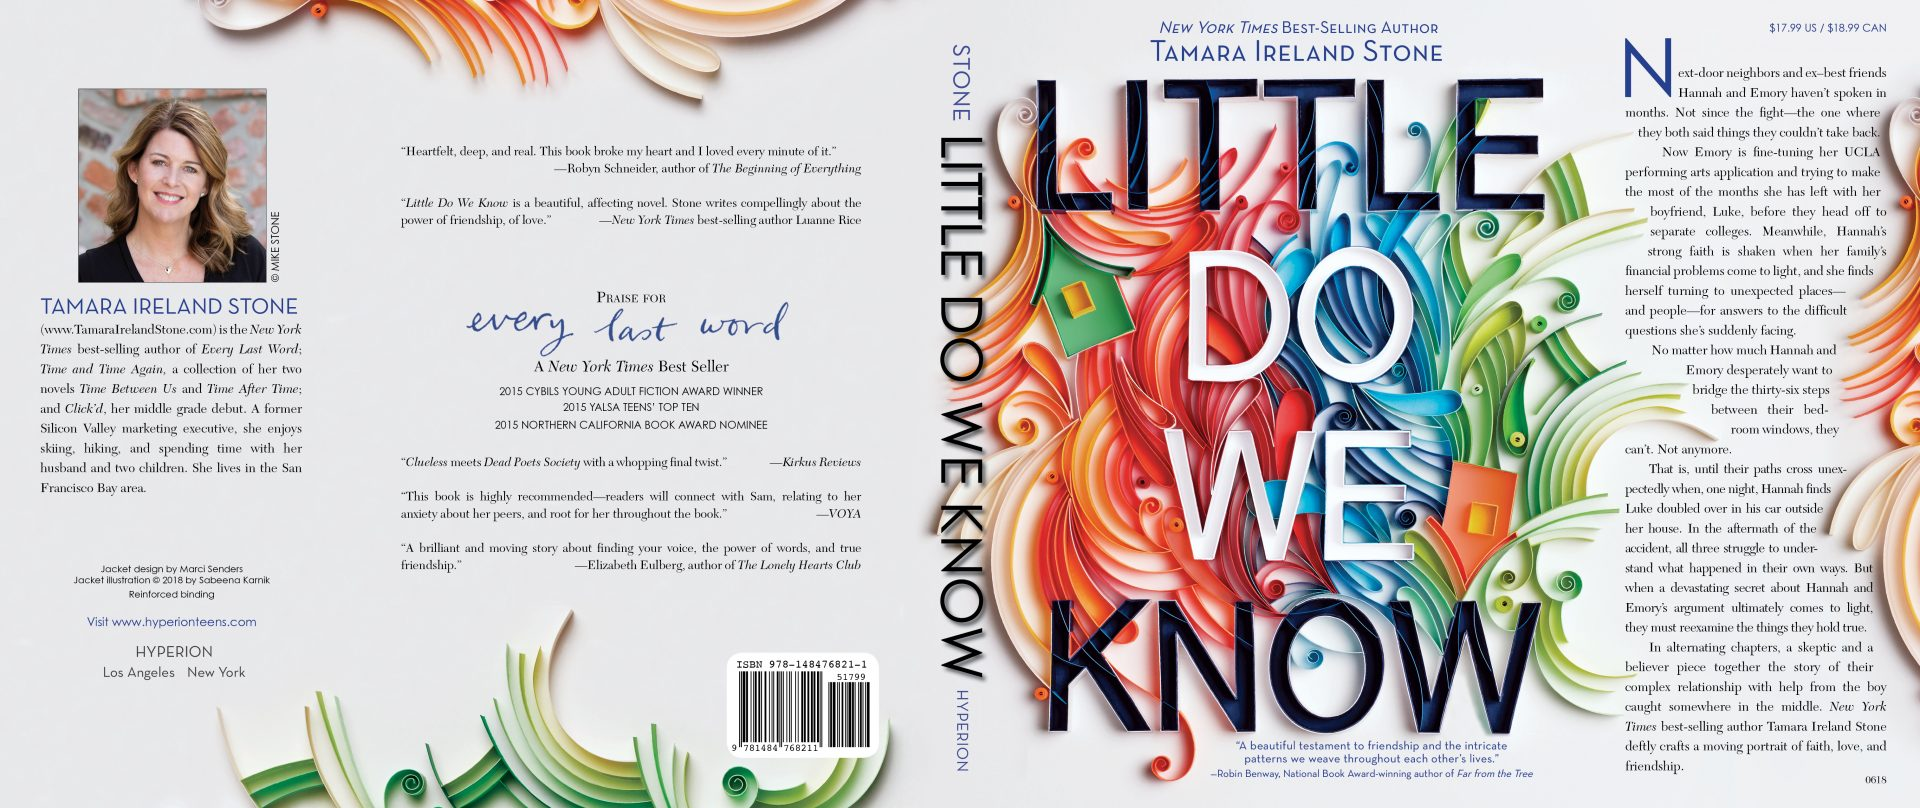 Little Do We Know Book Jacket